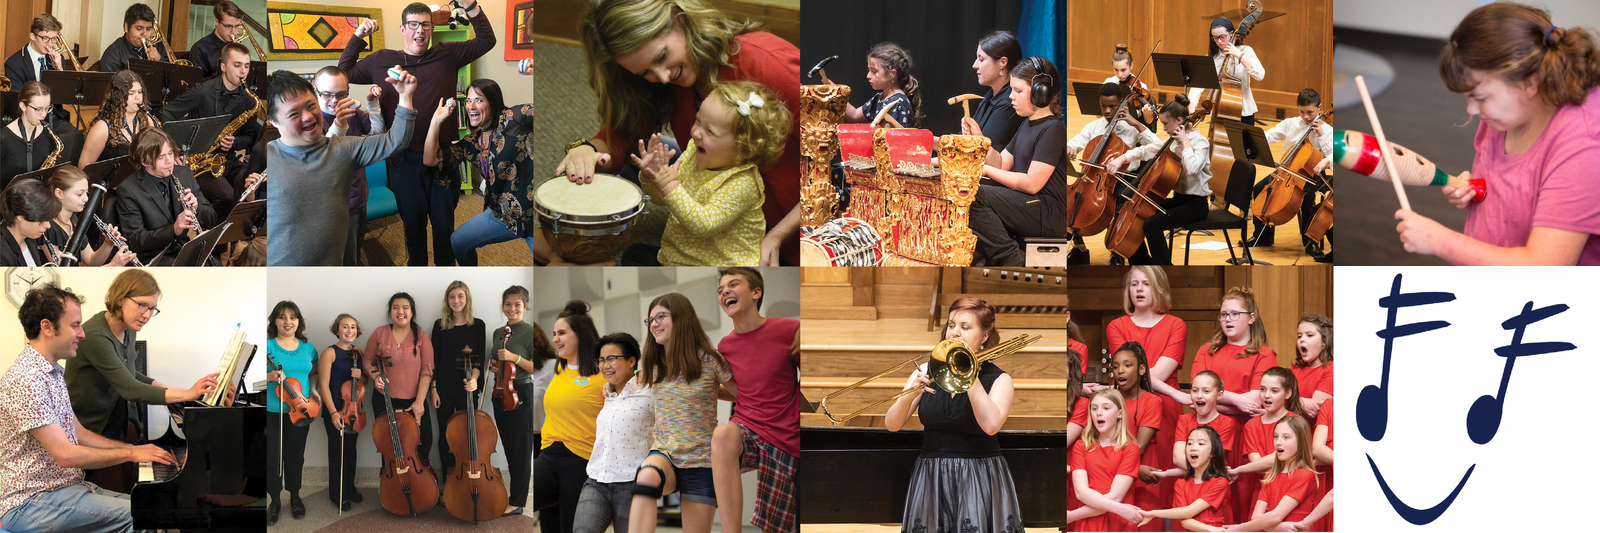 A collage of Community Music School program photos, including band, orchestra, gamelan, private lessons, ASTRO Girl Choir, summer camps, special needs classes, and Early Childhood Music classes. The smile logo is in the lower corner.